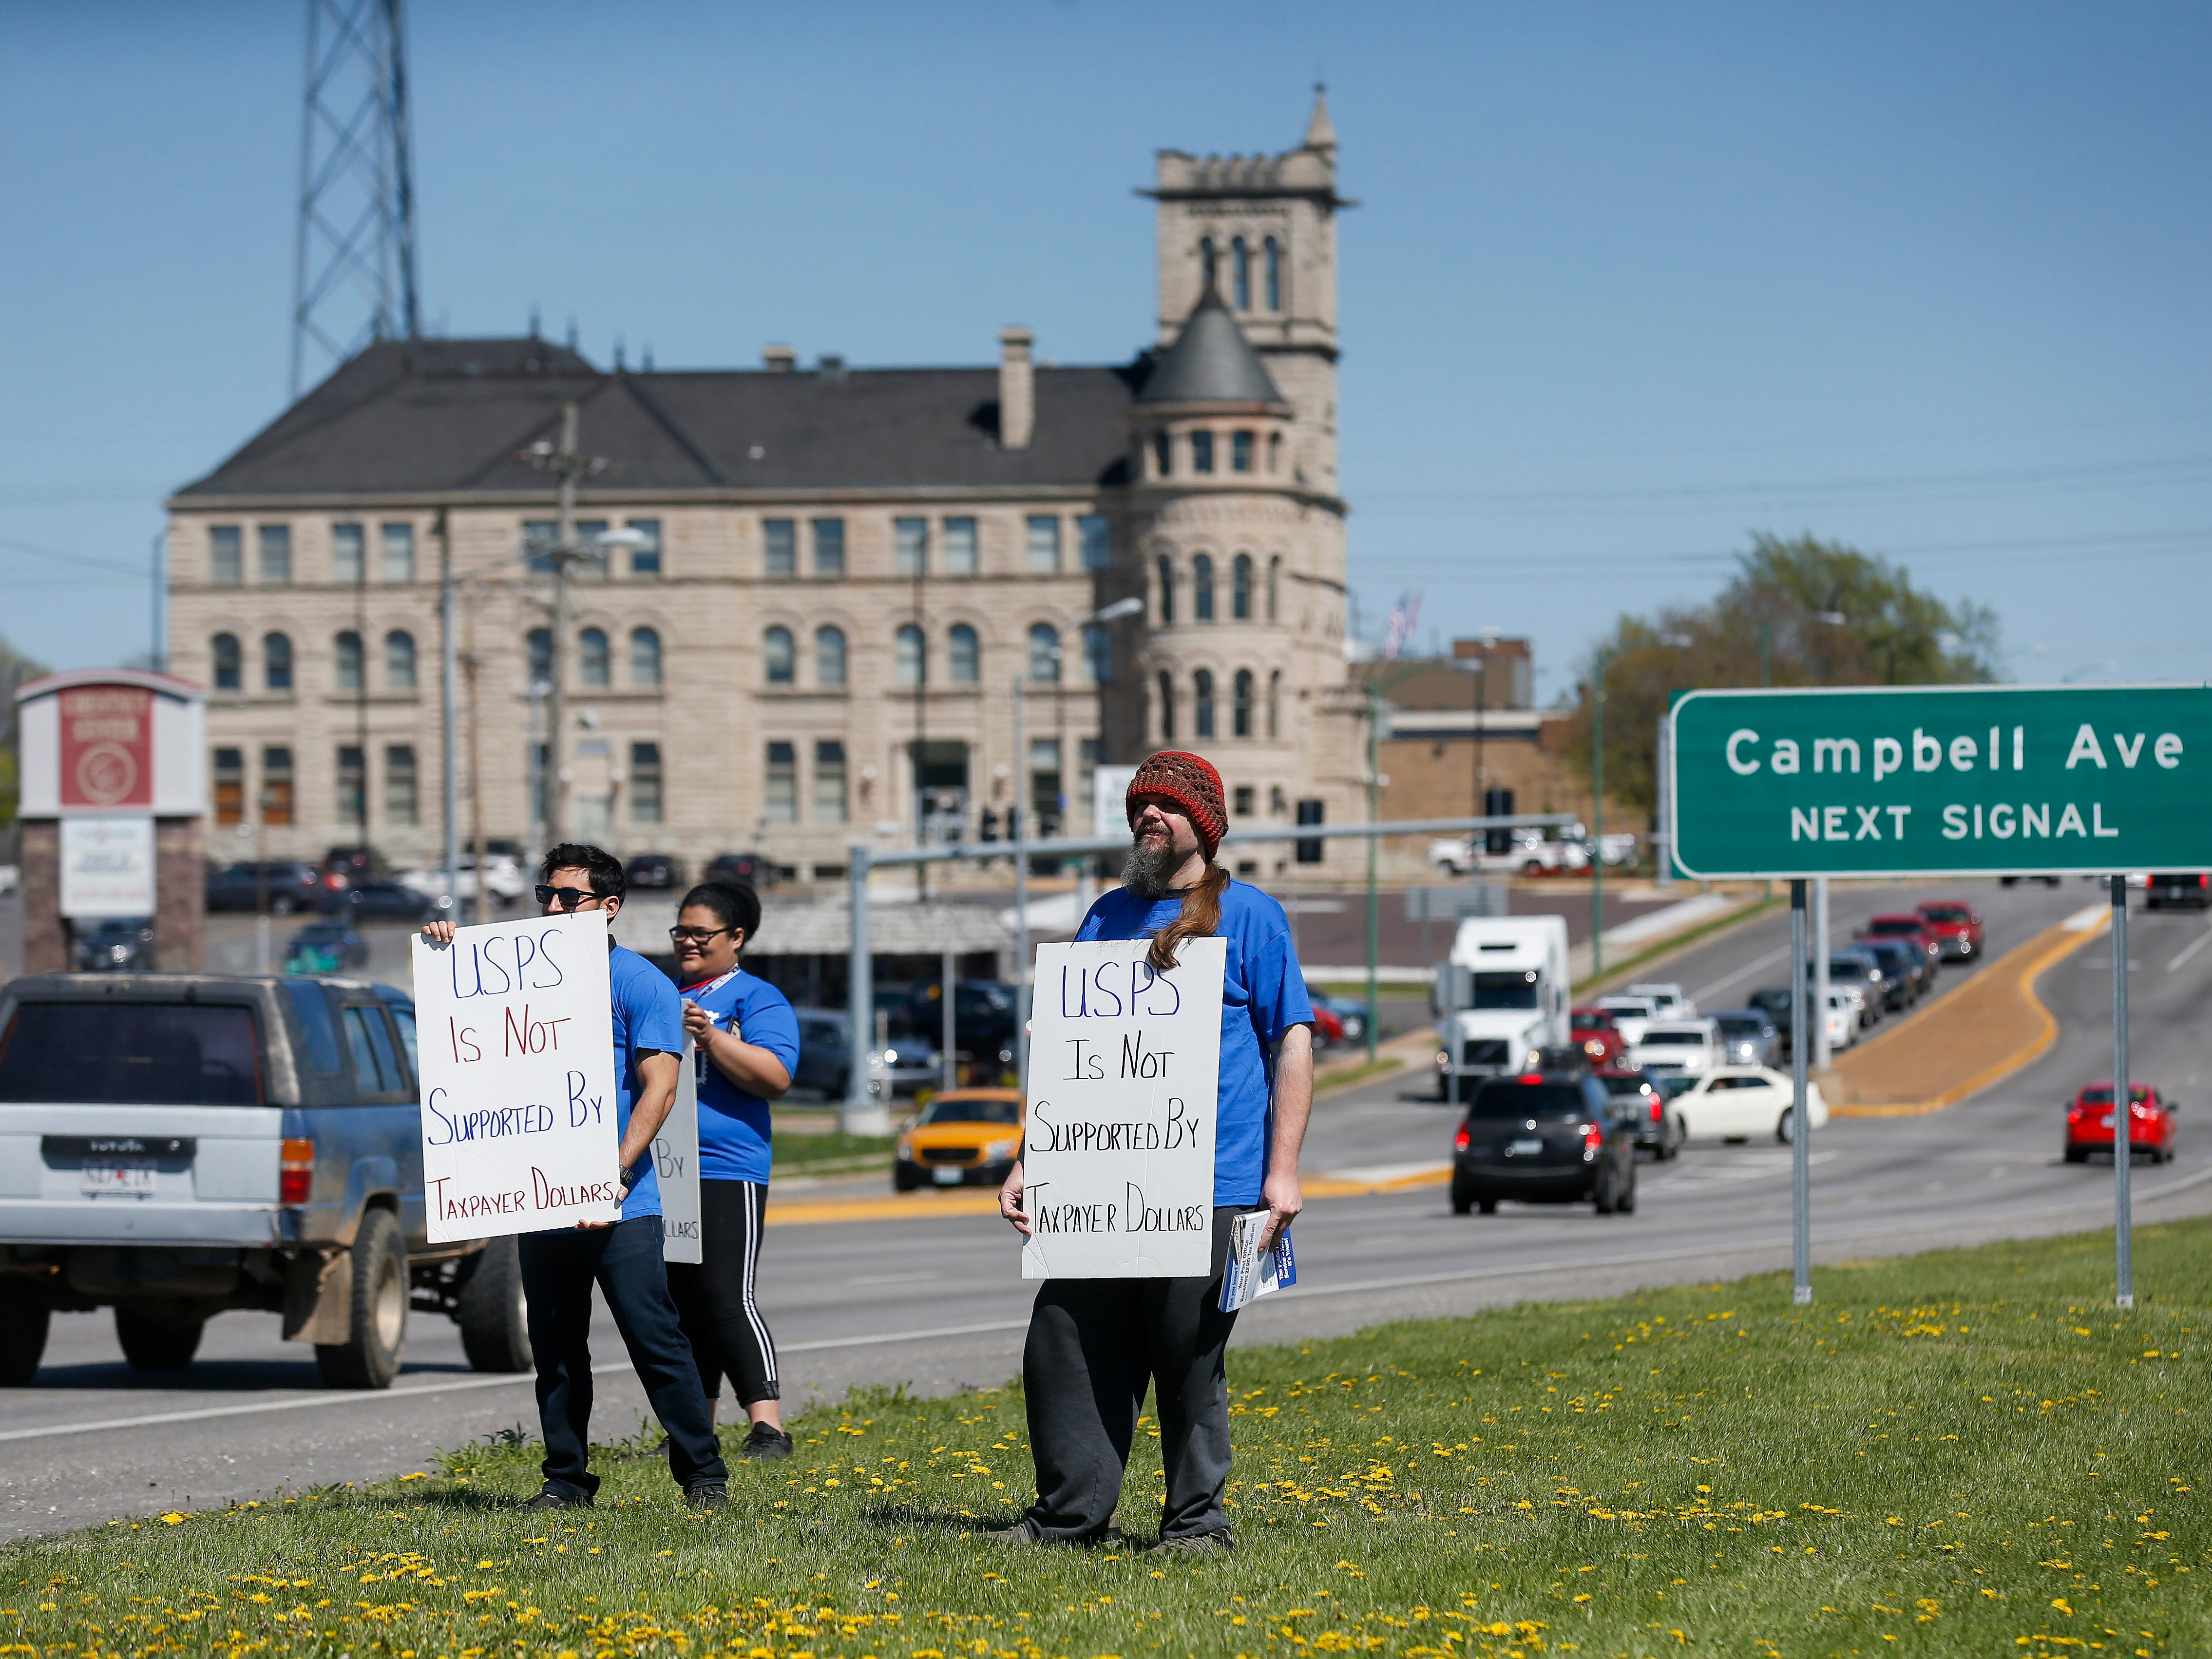 Around 10 U.S. Postal Service employees participated in an informational picket outside of the Post Office at 500 West Chestnut Expressway on Monday, April 15, 2019 to inform the public that they receive no tax dollars.